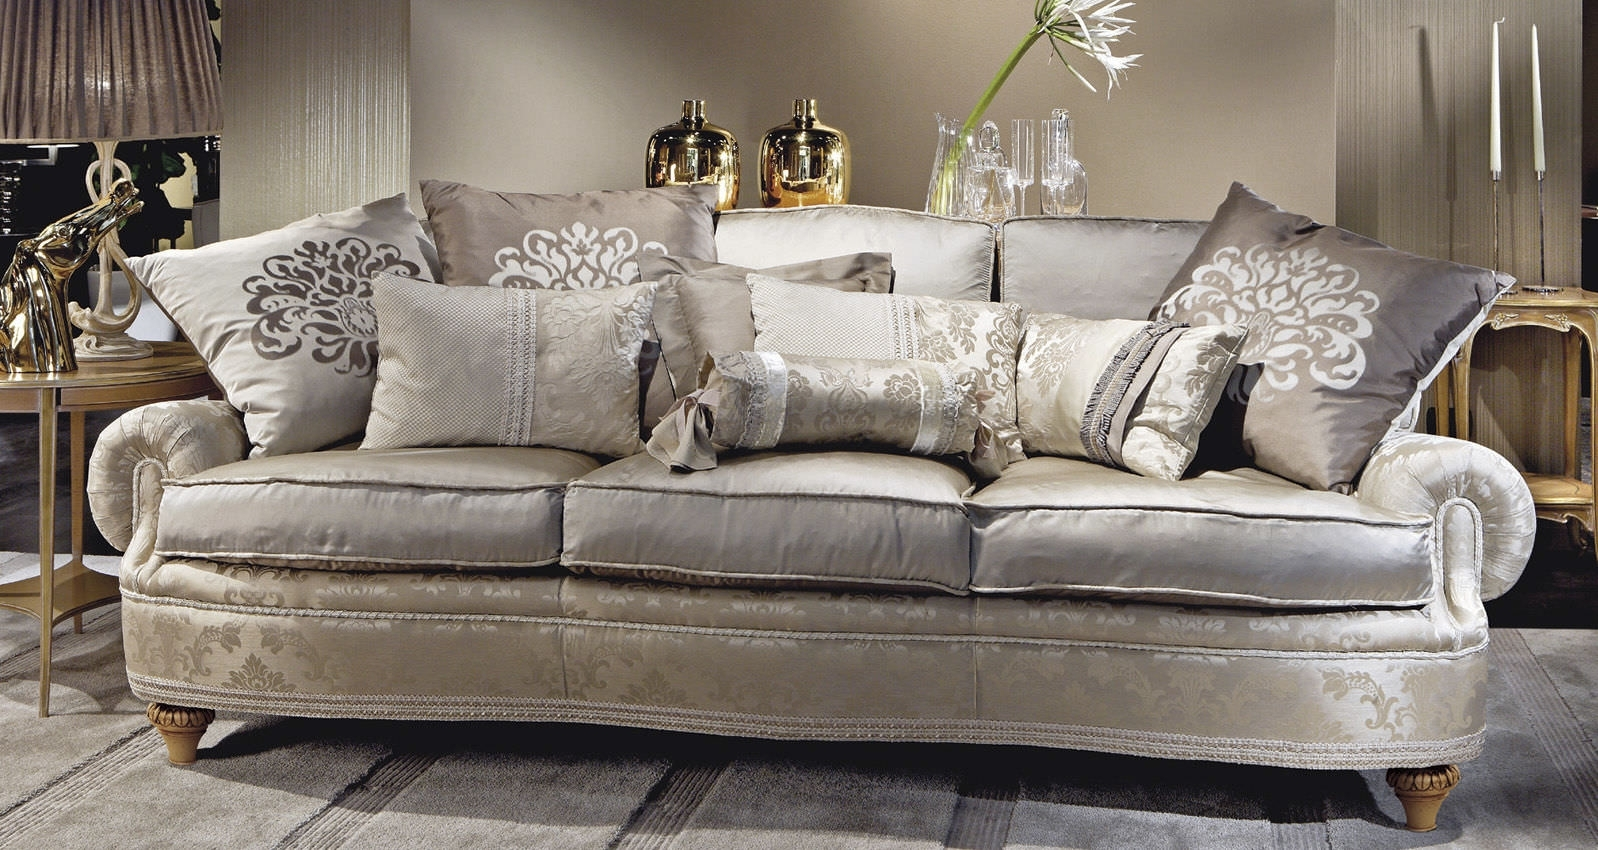 Epic Traditional Sofas 60 For Modern Sofa Inspiration With In Traditional Sofas (Image 4 of 10)